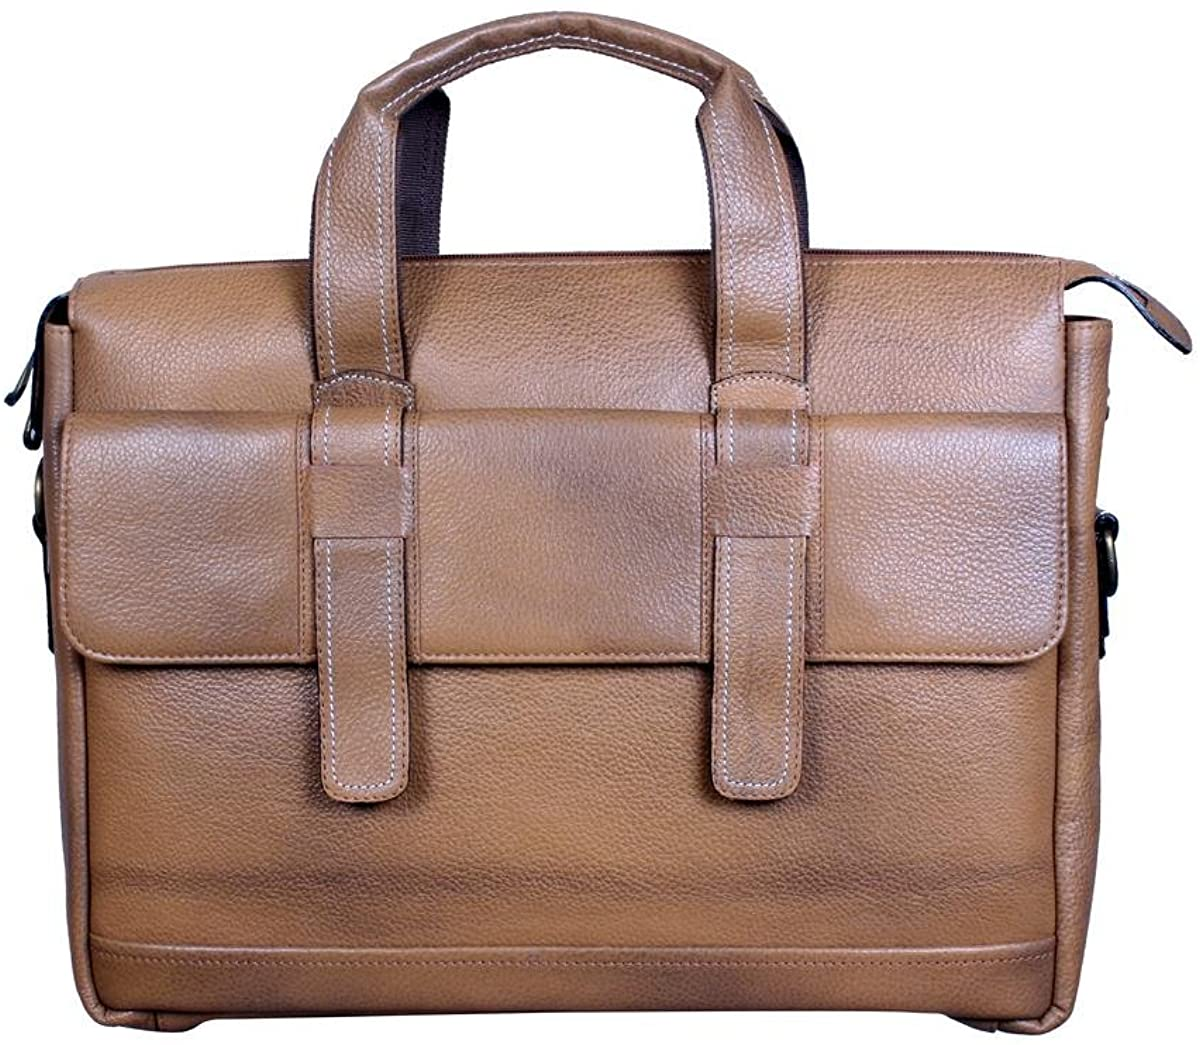 Marching Antz Office leather bags 2 loops Beige Ideal For 16 Inch Laptops